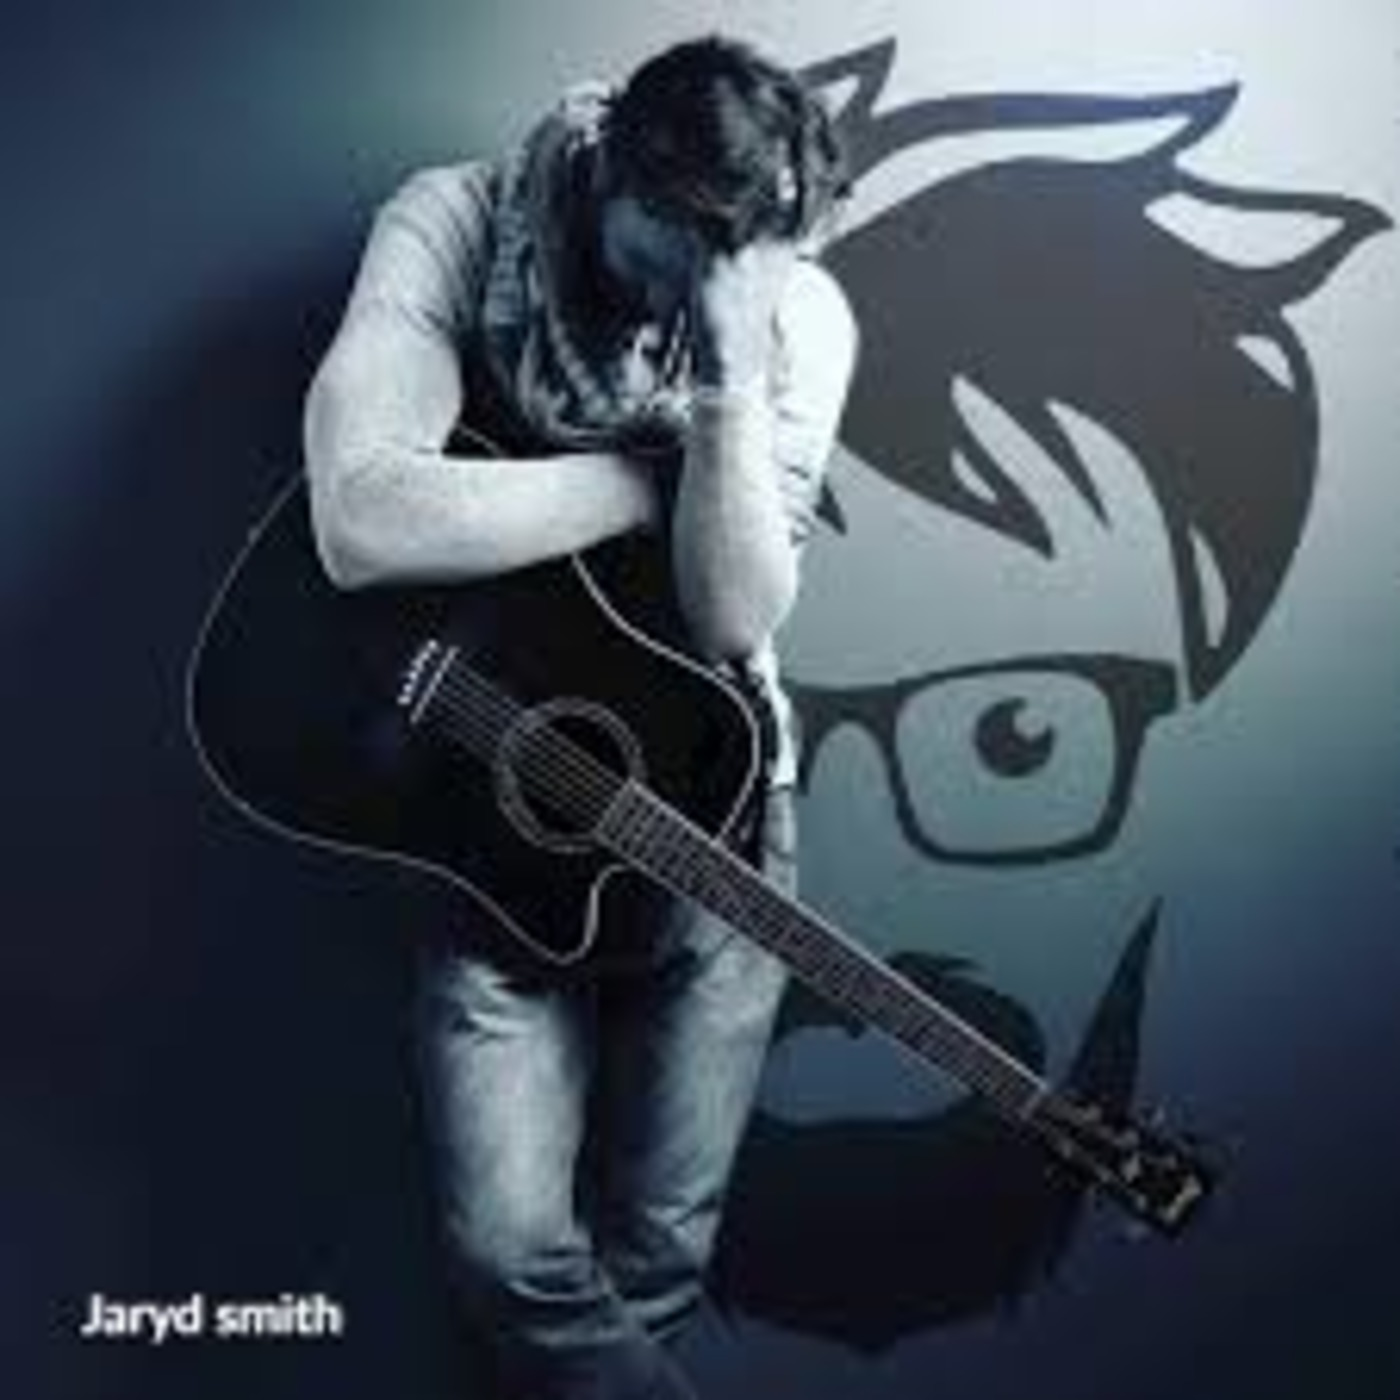 Jaryd Smith (Johannesburg, South Africa)...Take it to the Light